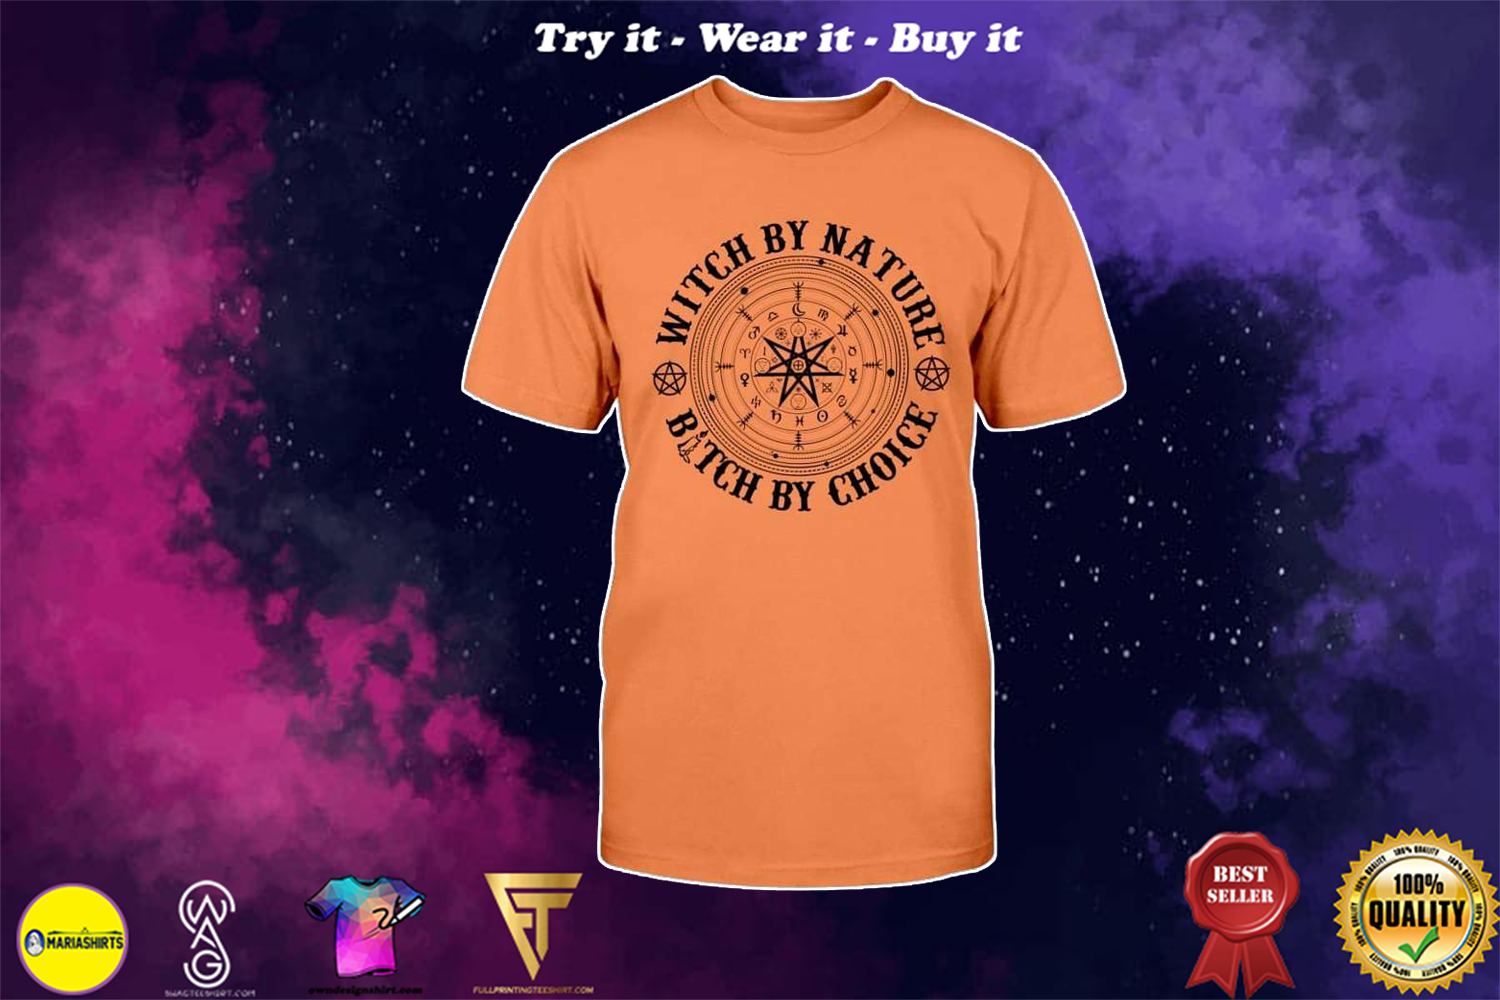 halloween witch by nature bitch by choice shirt